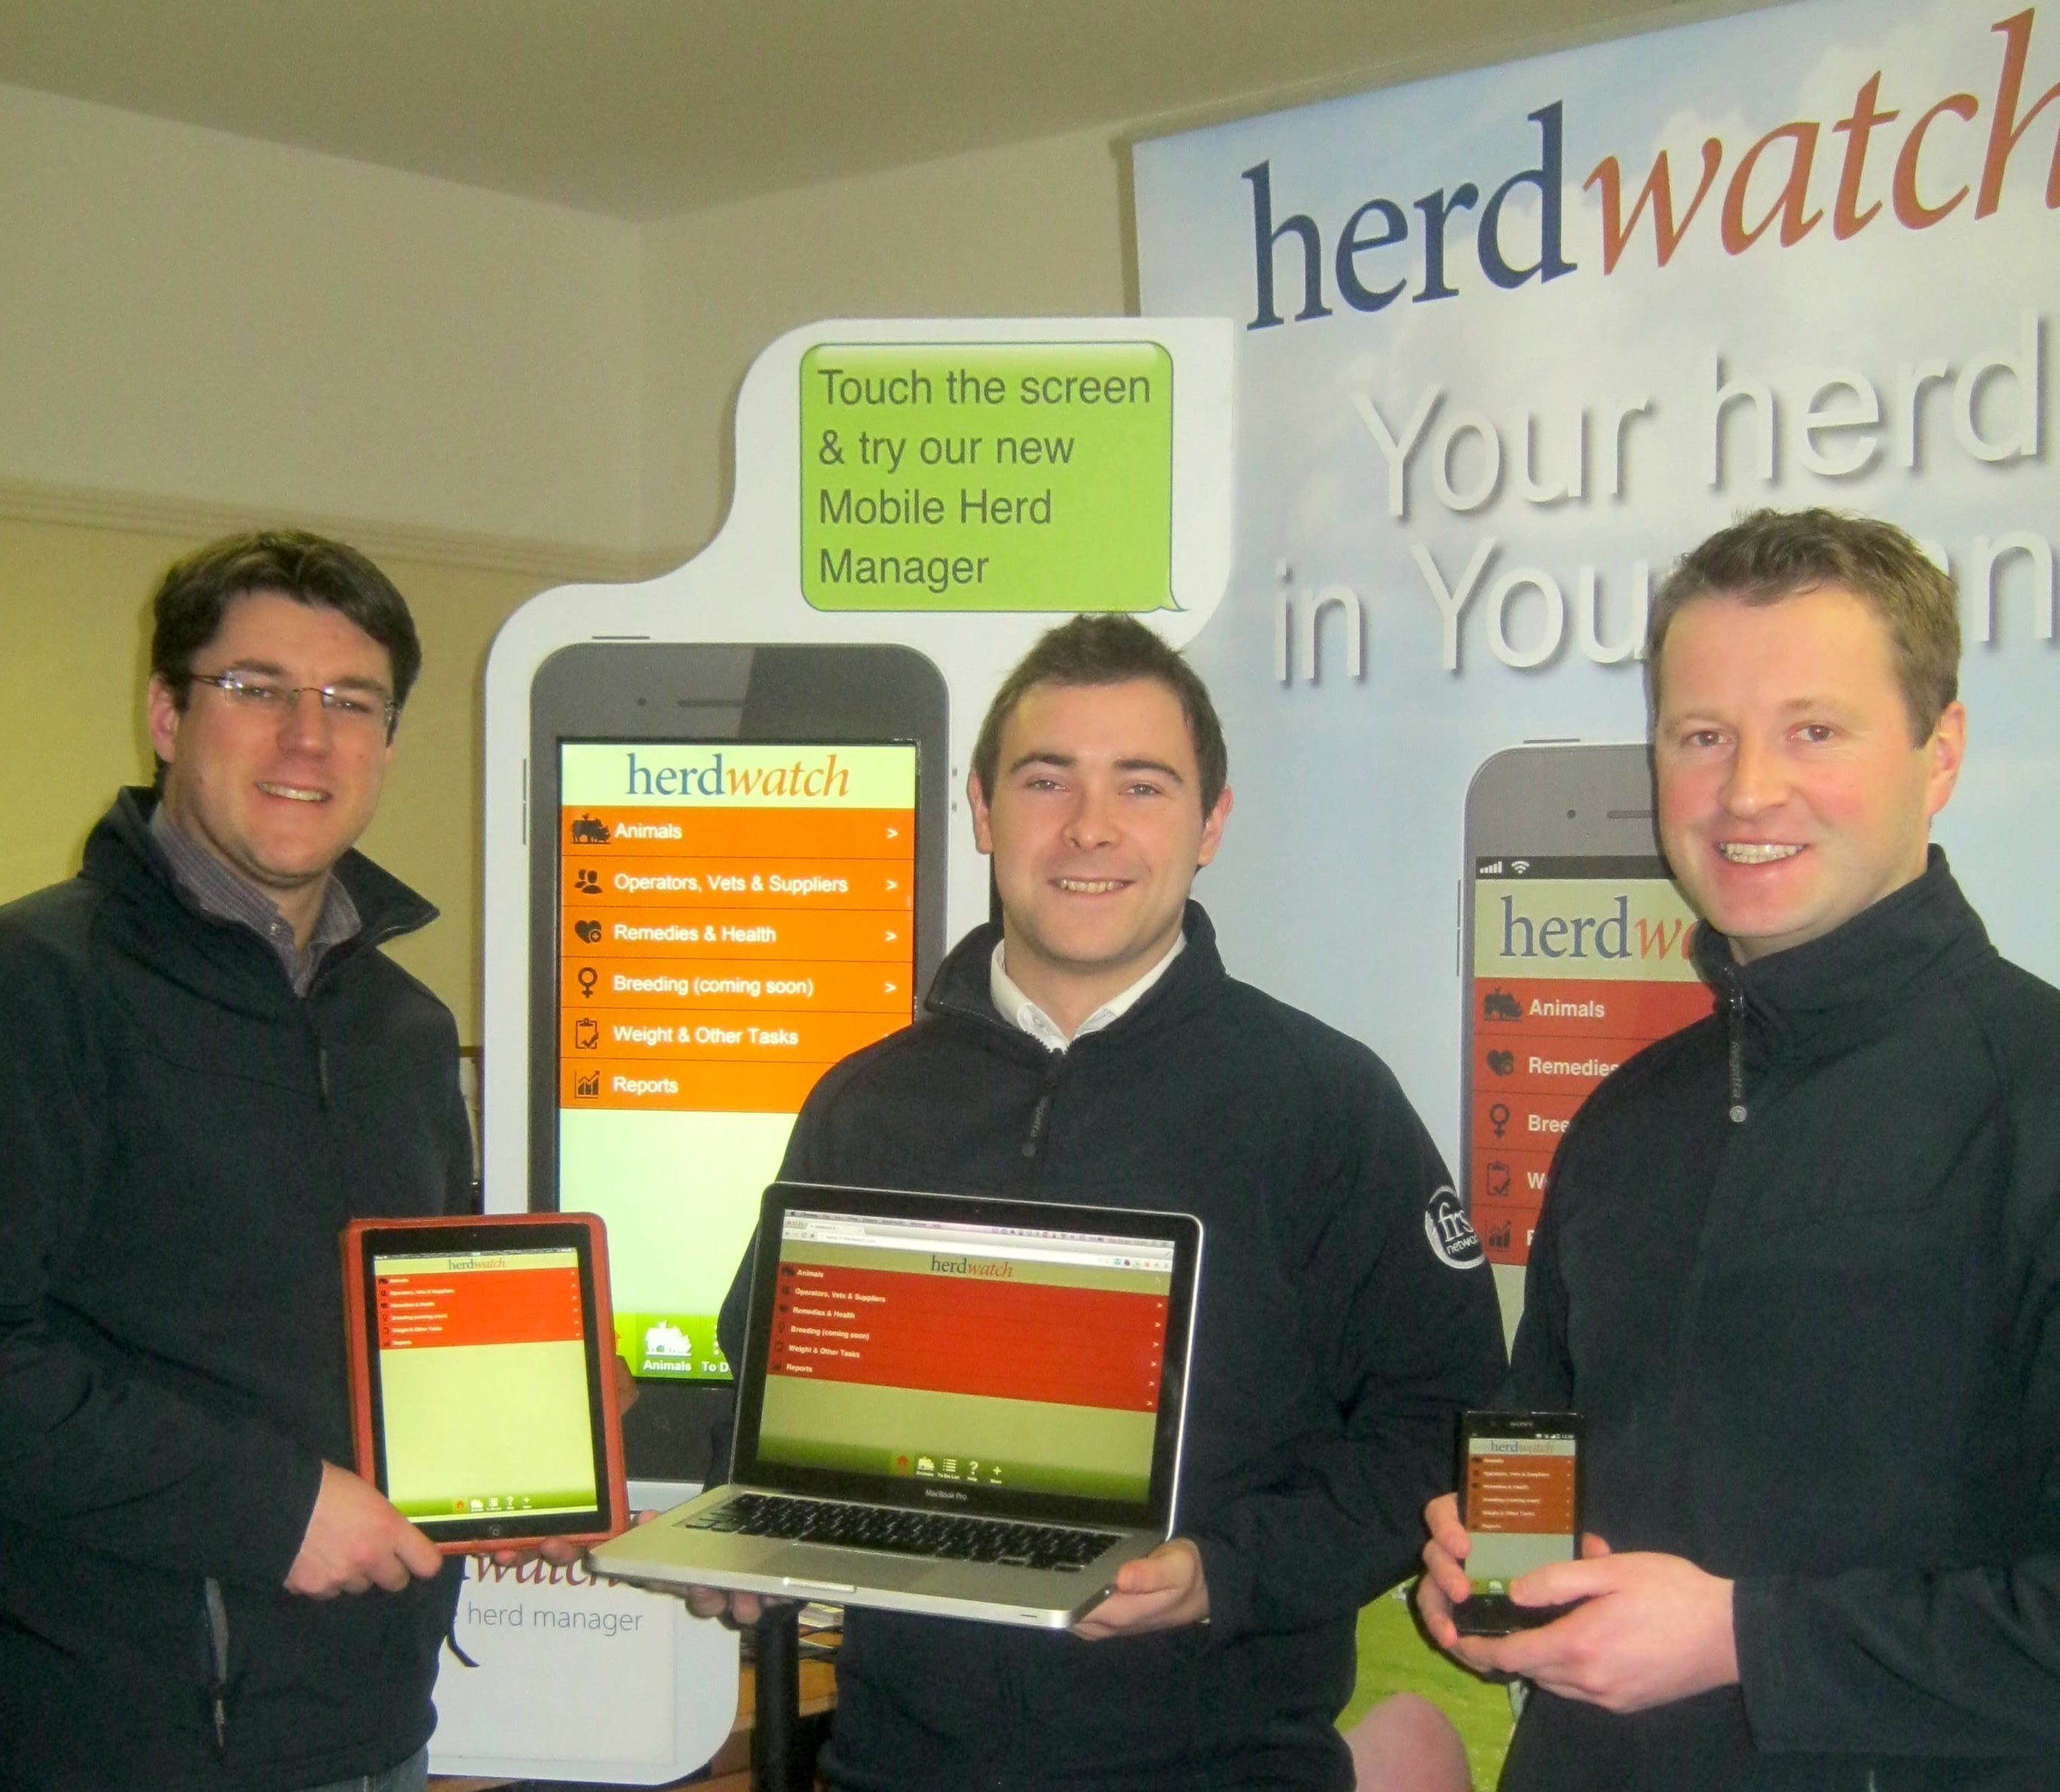 The Herdwatch Team; Fabien Peyaud, Eoin Moloney, Gearoid Fox.